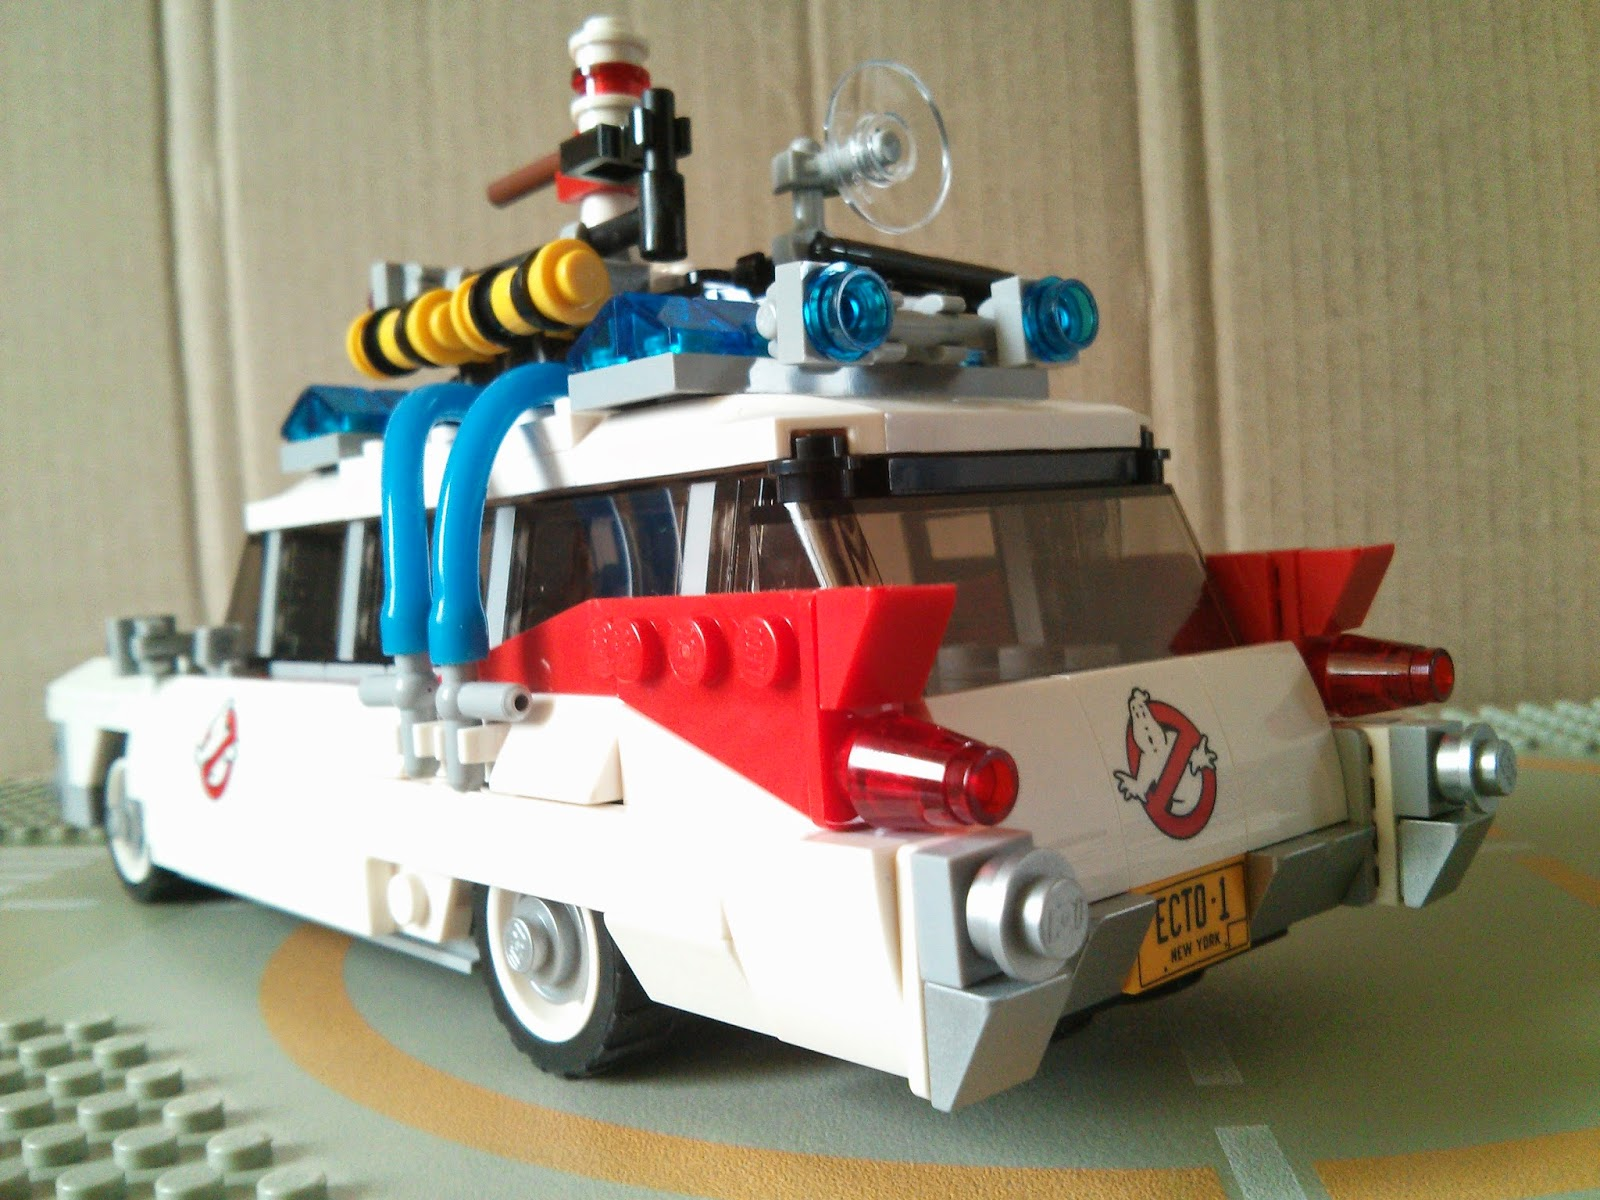 a shot of the back of the Lego Ecto-1